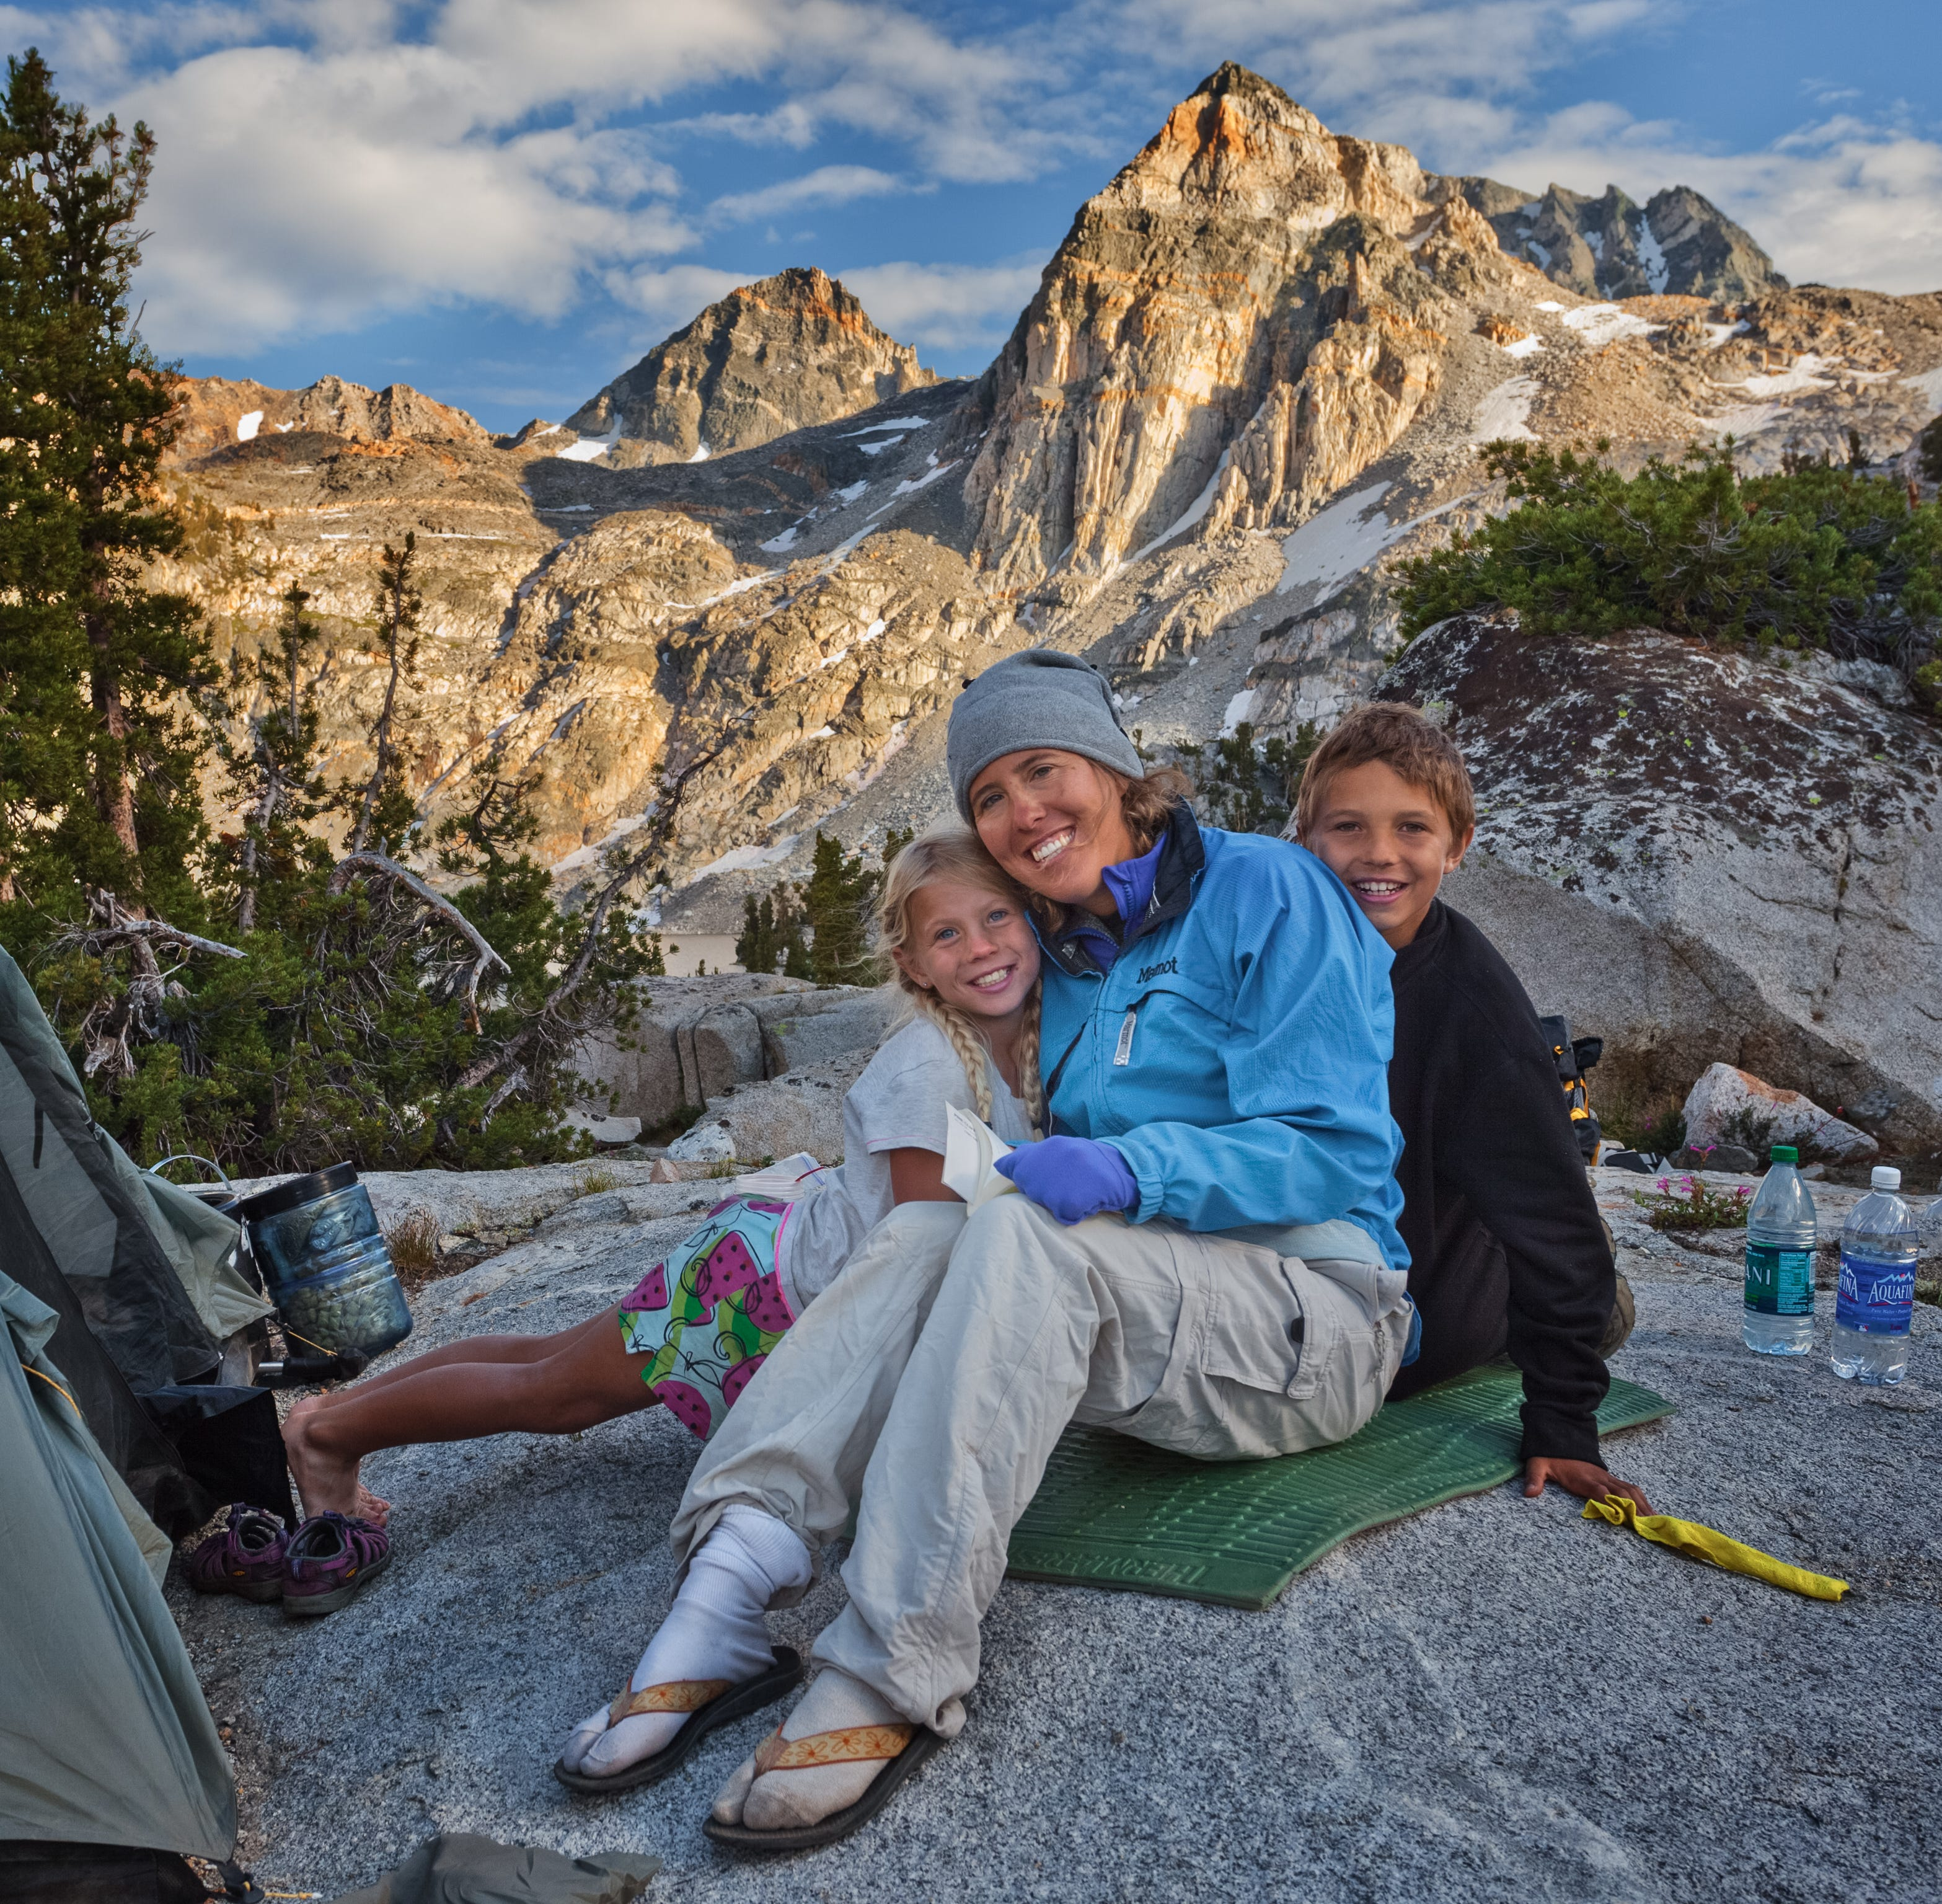 5 big ideas that will get you and your family on the trail together